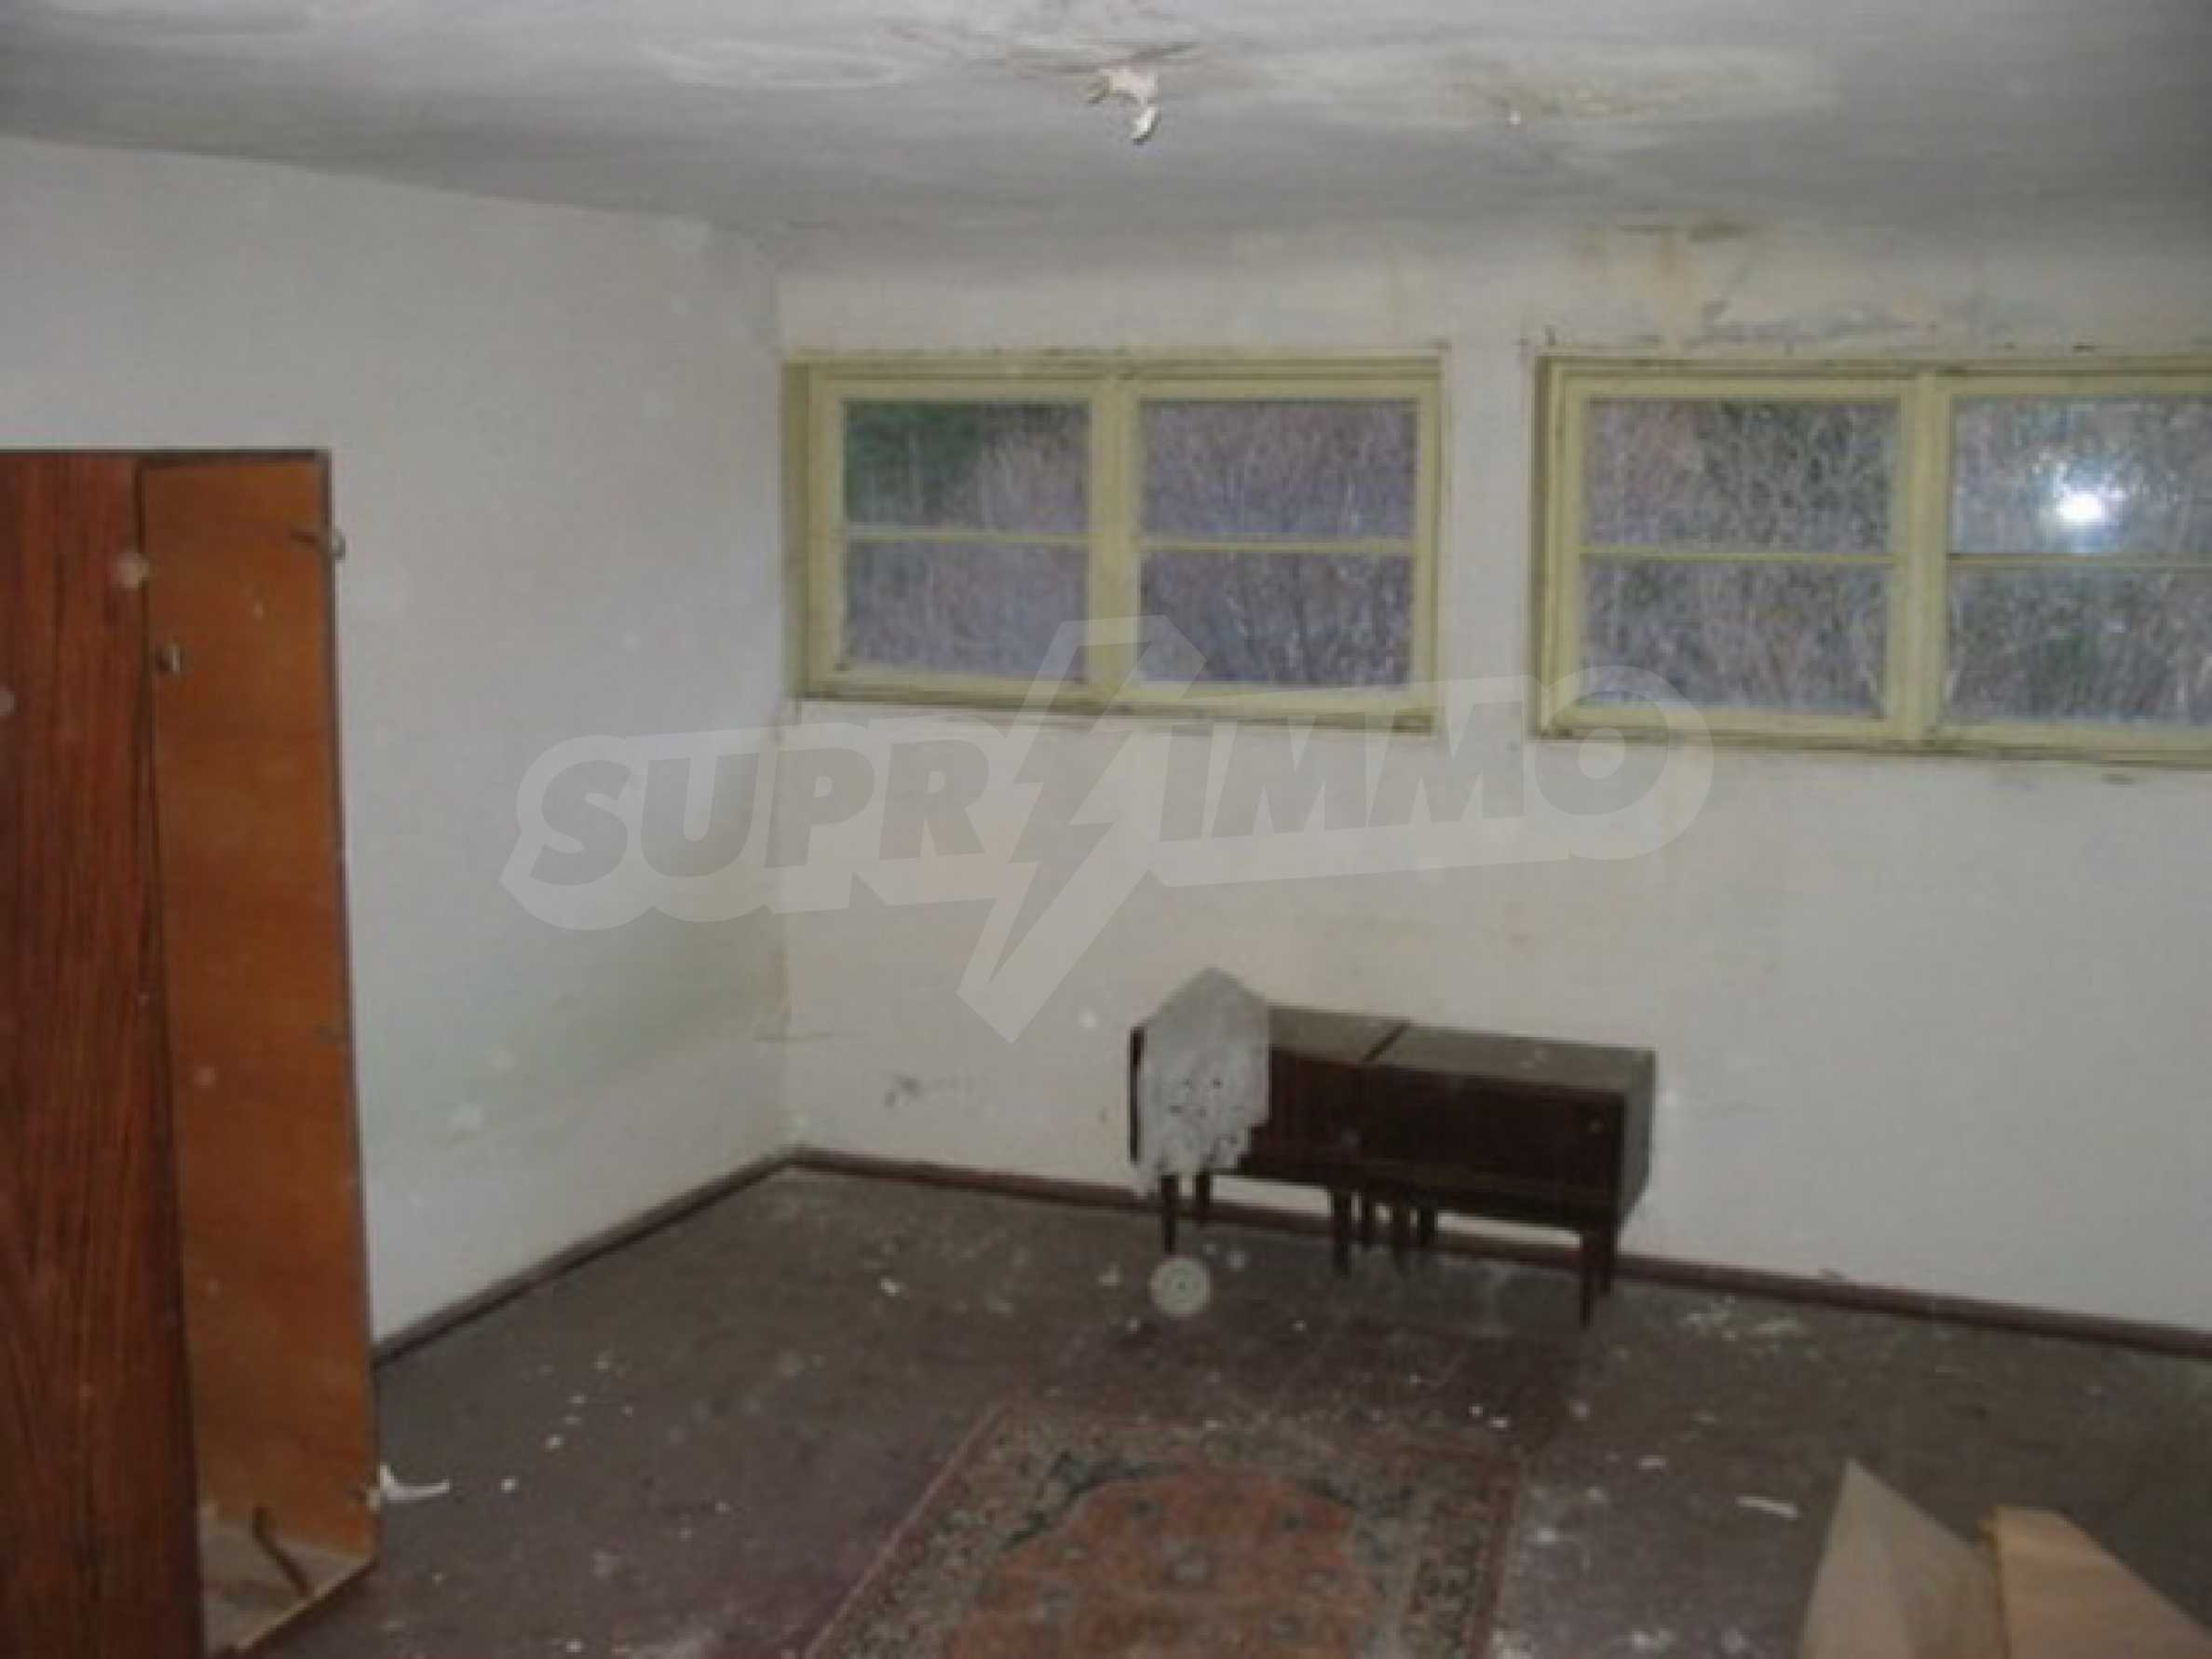 Hotel in need of complete renovation 8